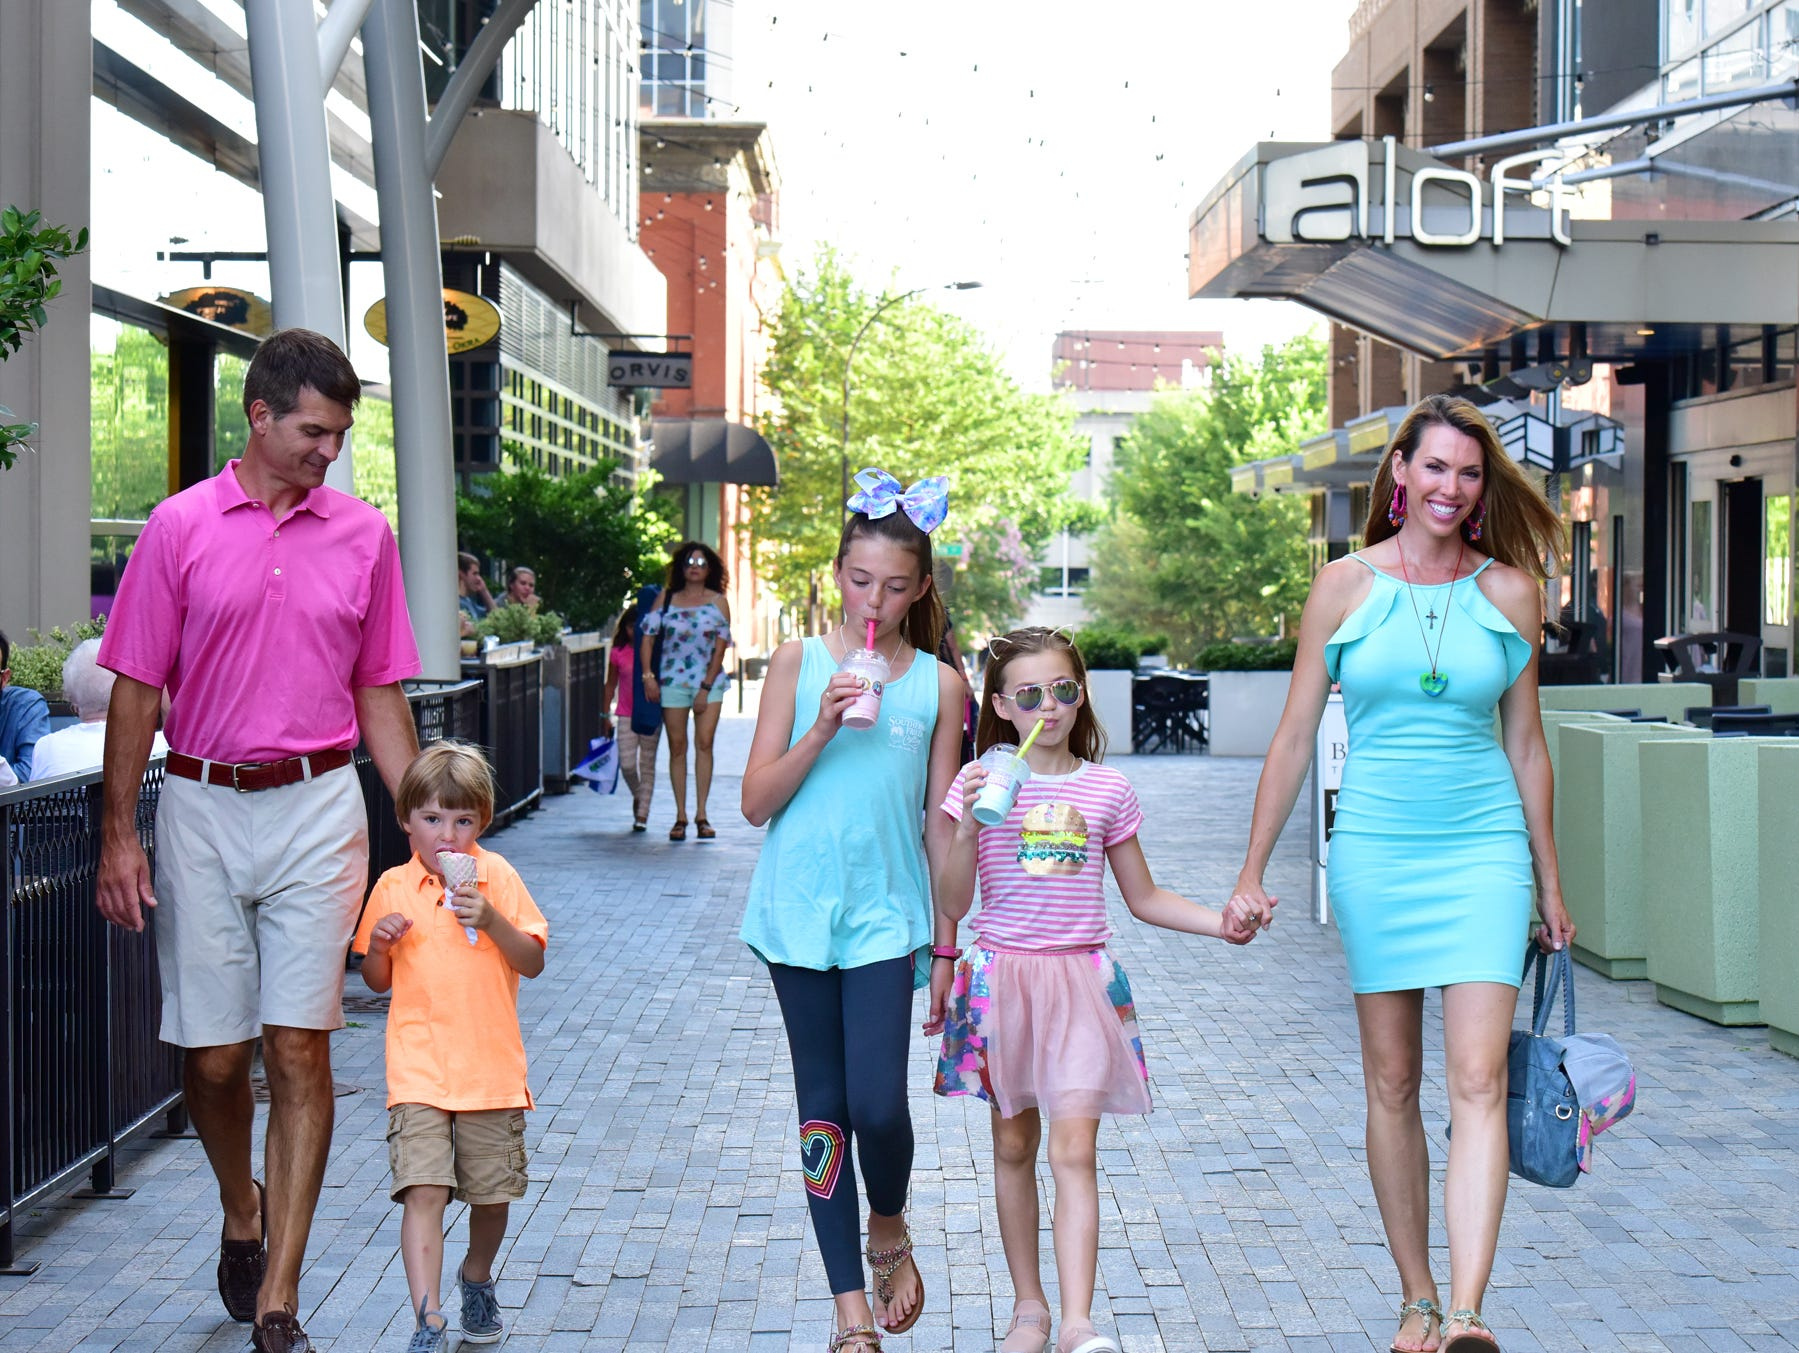 The Hewitt Family, Jay, Thomas, 4, Janna, 11, Ainslie, 8, and Anna walk togther in downtown Greenville.